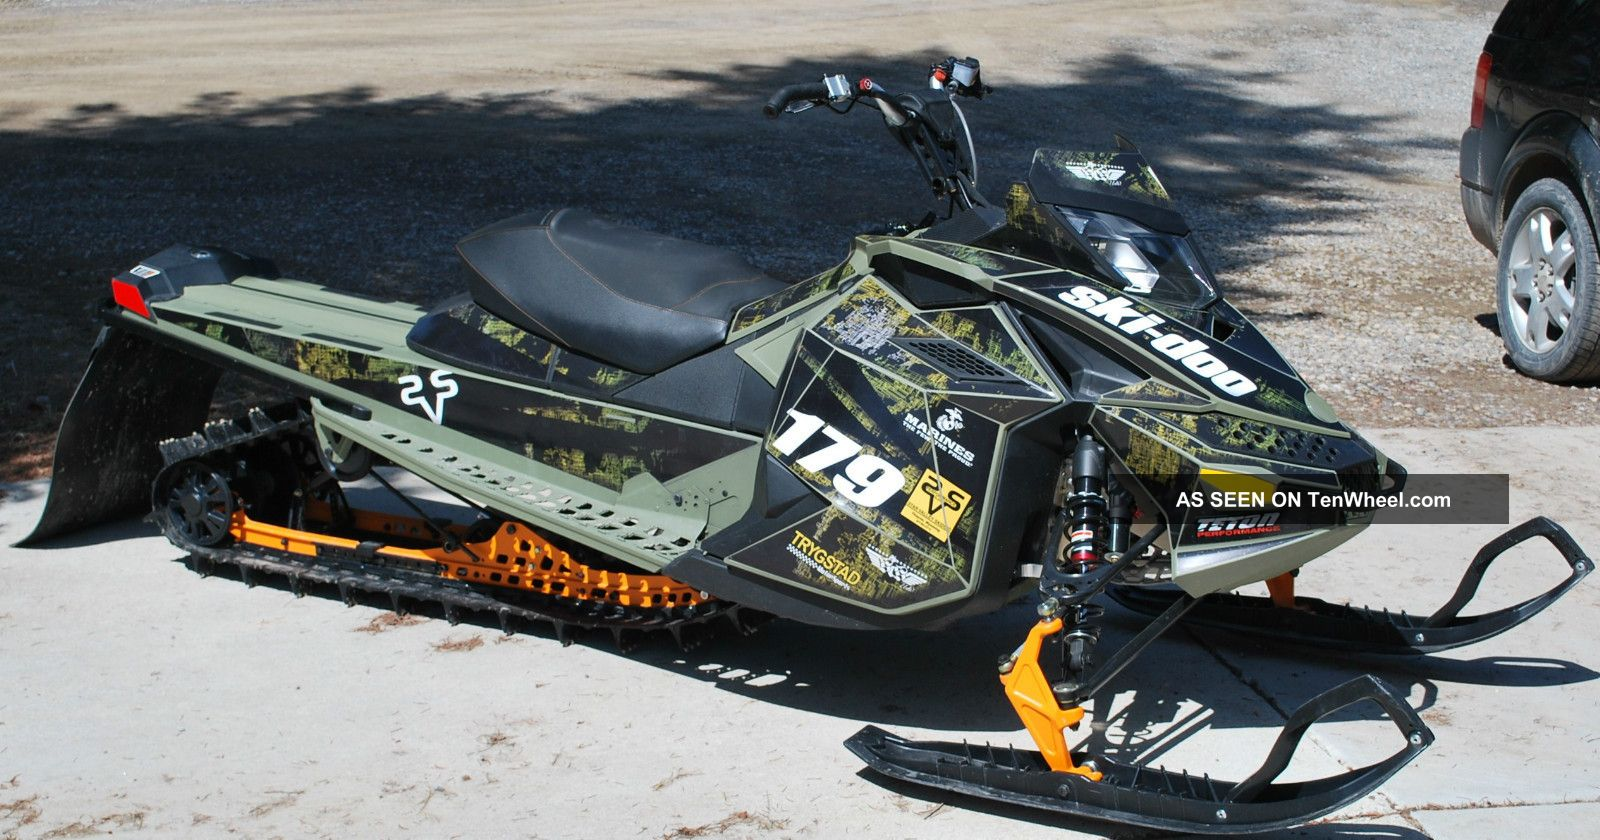 Yamaha Sled Wraps >> 2013 Ski Doo Freeride Wraps | www.imgkid.com - The Image Kid Has It!